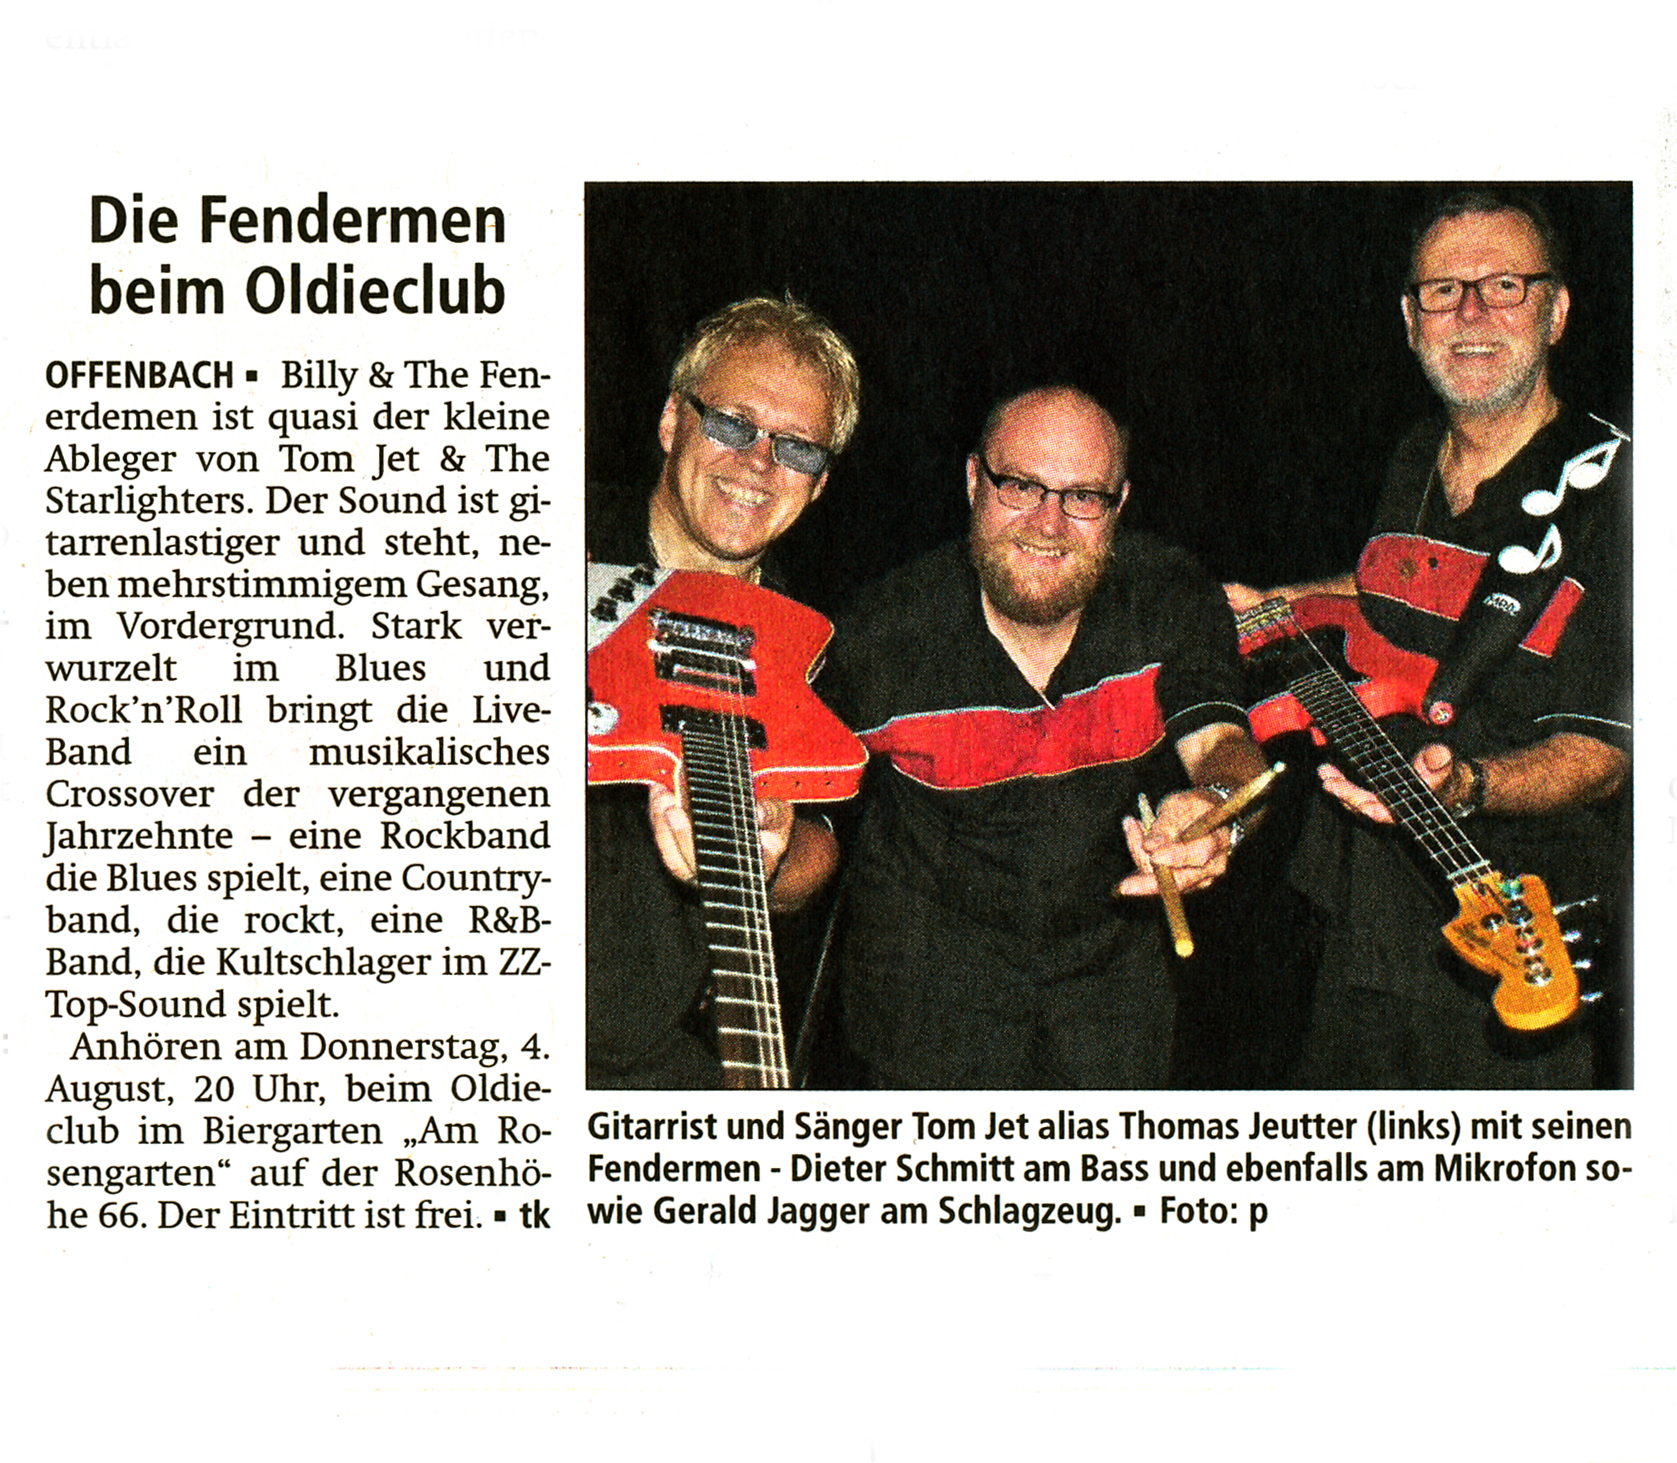 Offenbach Post, 1. August 2016